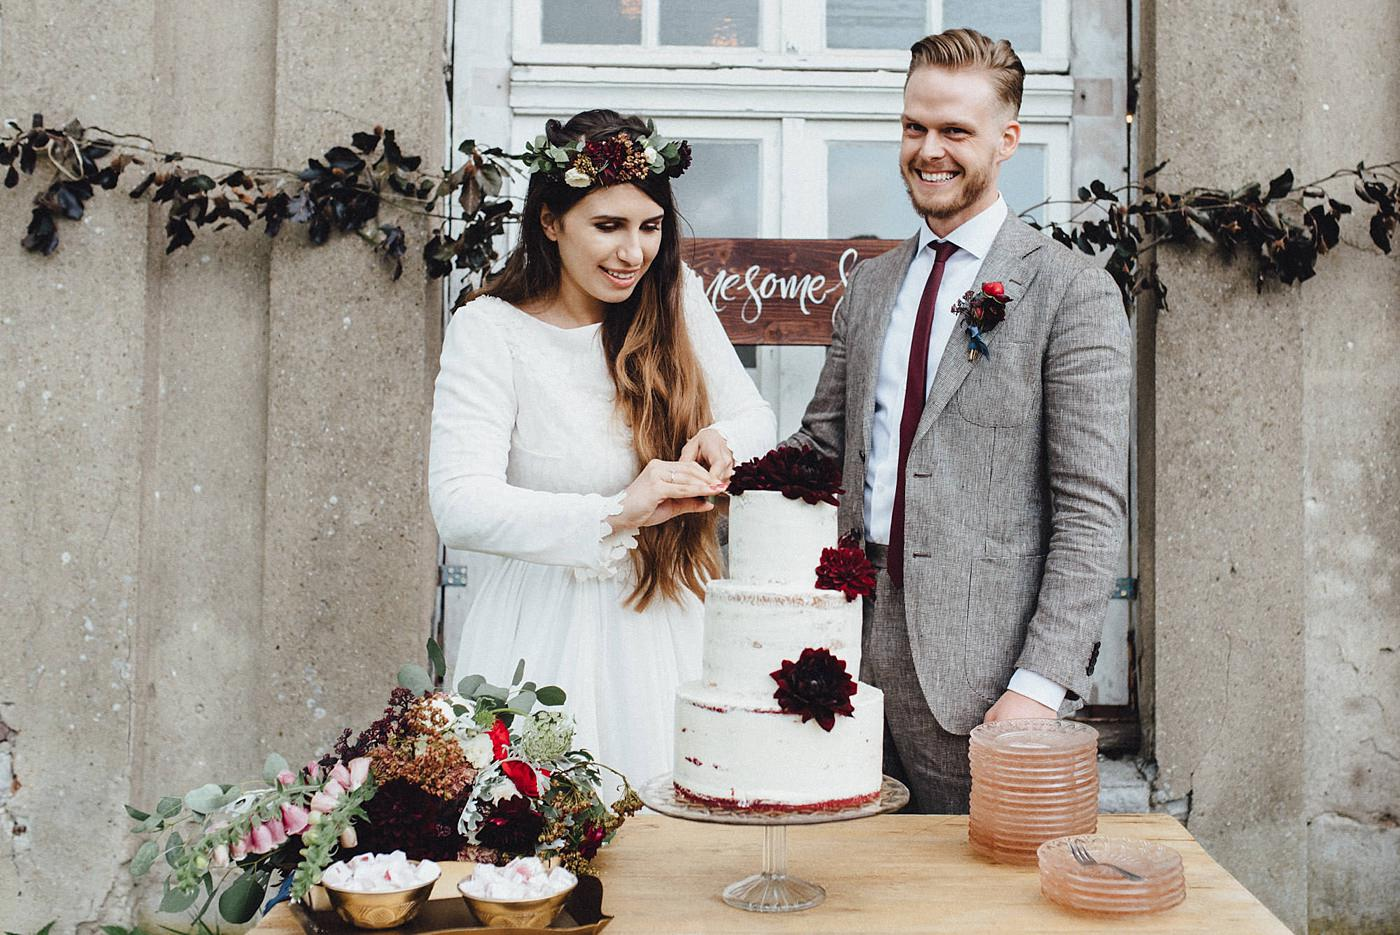 urban-elopement-wedding-166 Merve & Nils emotionales Elopement - Wedding Wesel & Schottlandurban elopement wedding 166 1